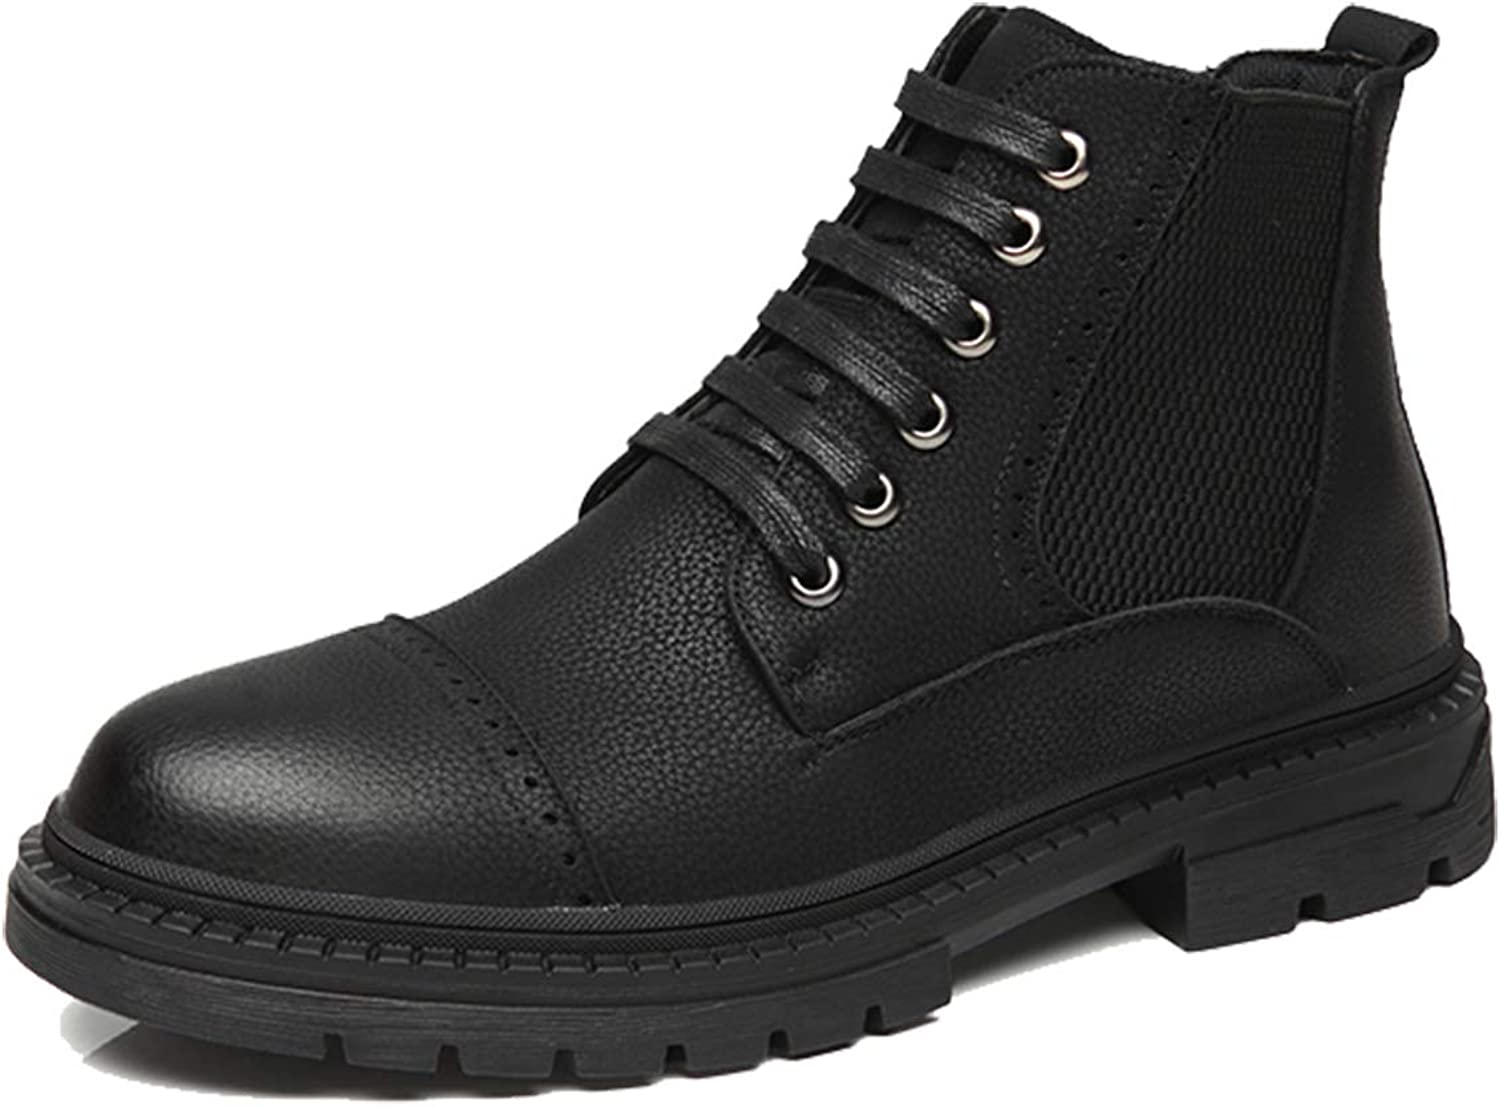 BLACK BREATHABLE LEATHER CHUKKA SAFETY STEEL TOE WORK LACE BOOT MIDSOLE sz 6-10